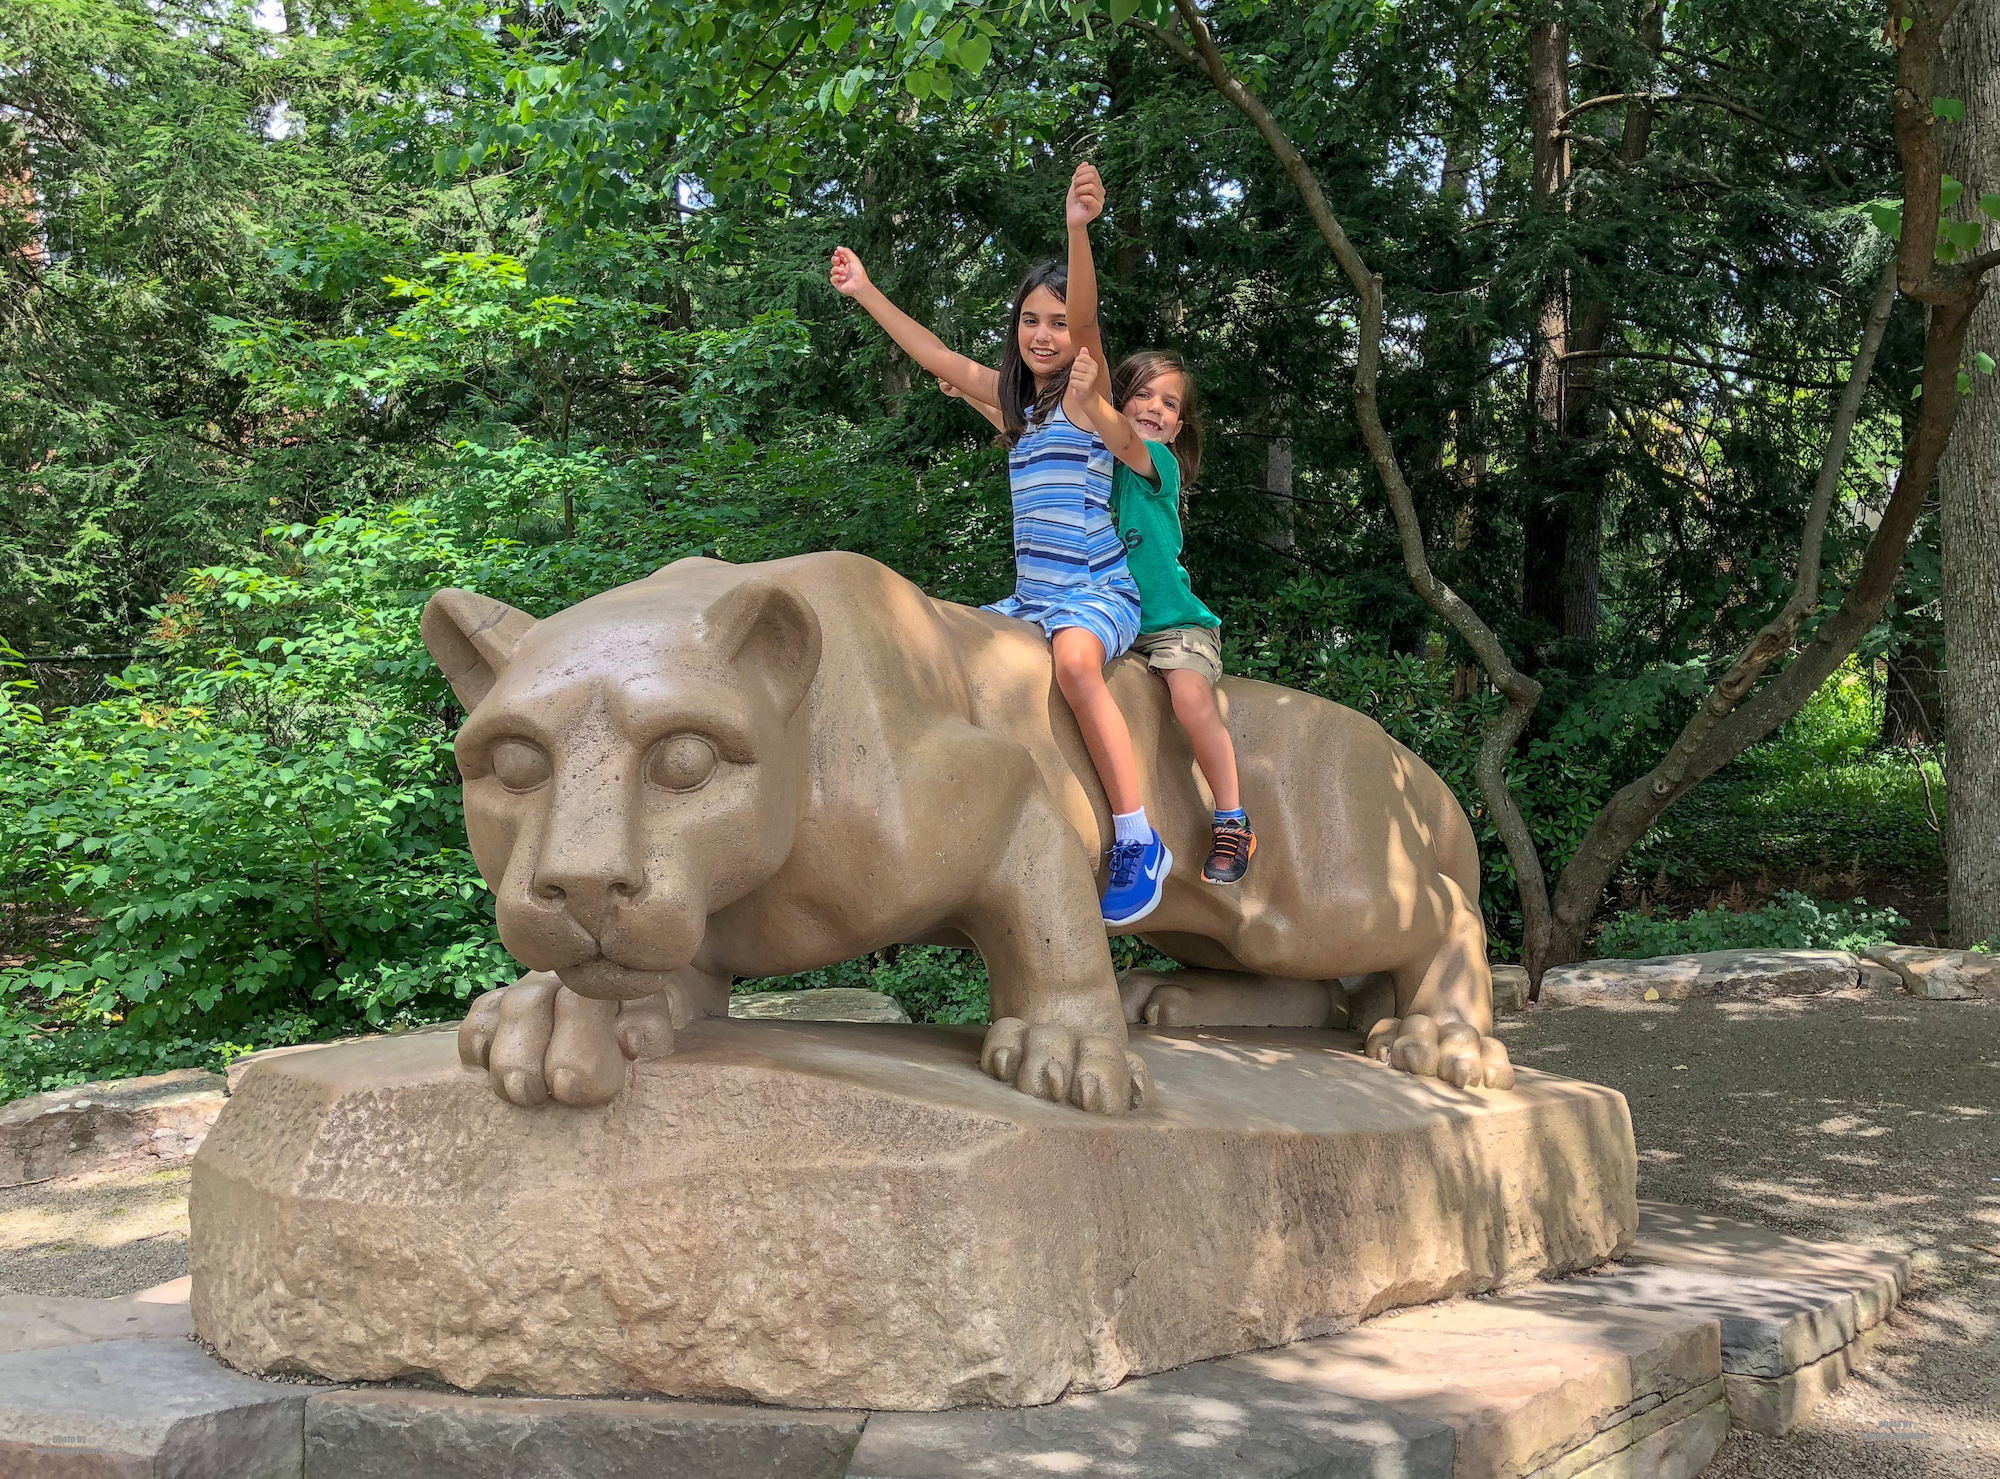 On a Pennsylvania road trip, it's essential to make it to State College to pose with the Nittany Lion shrine. The Nittany Lion is the mascot of Pennsylvania State University in University Park, Pennsylvania, USA and its athletic teams.